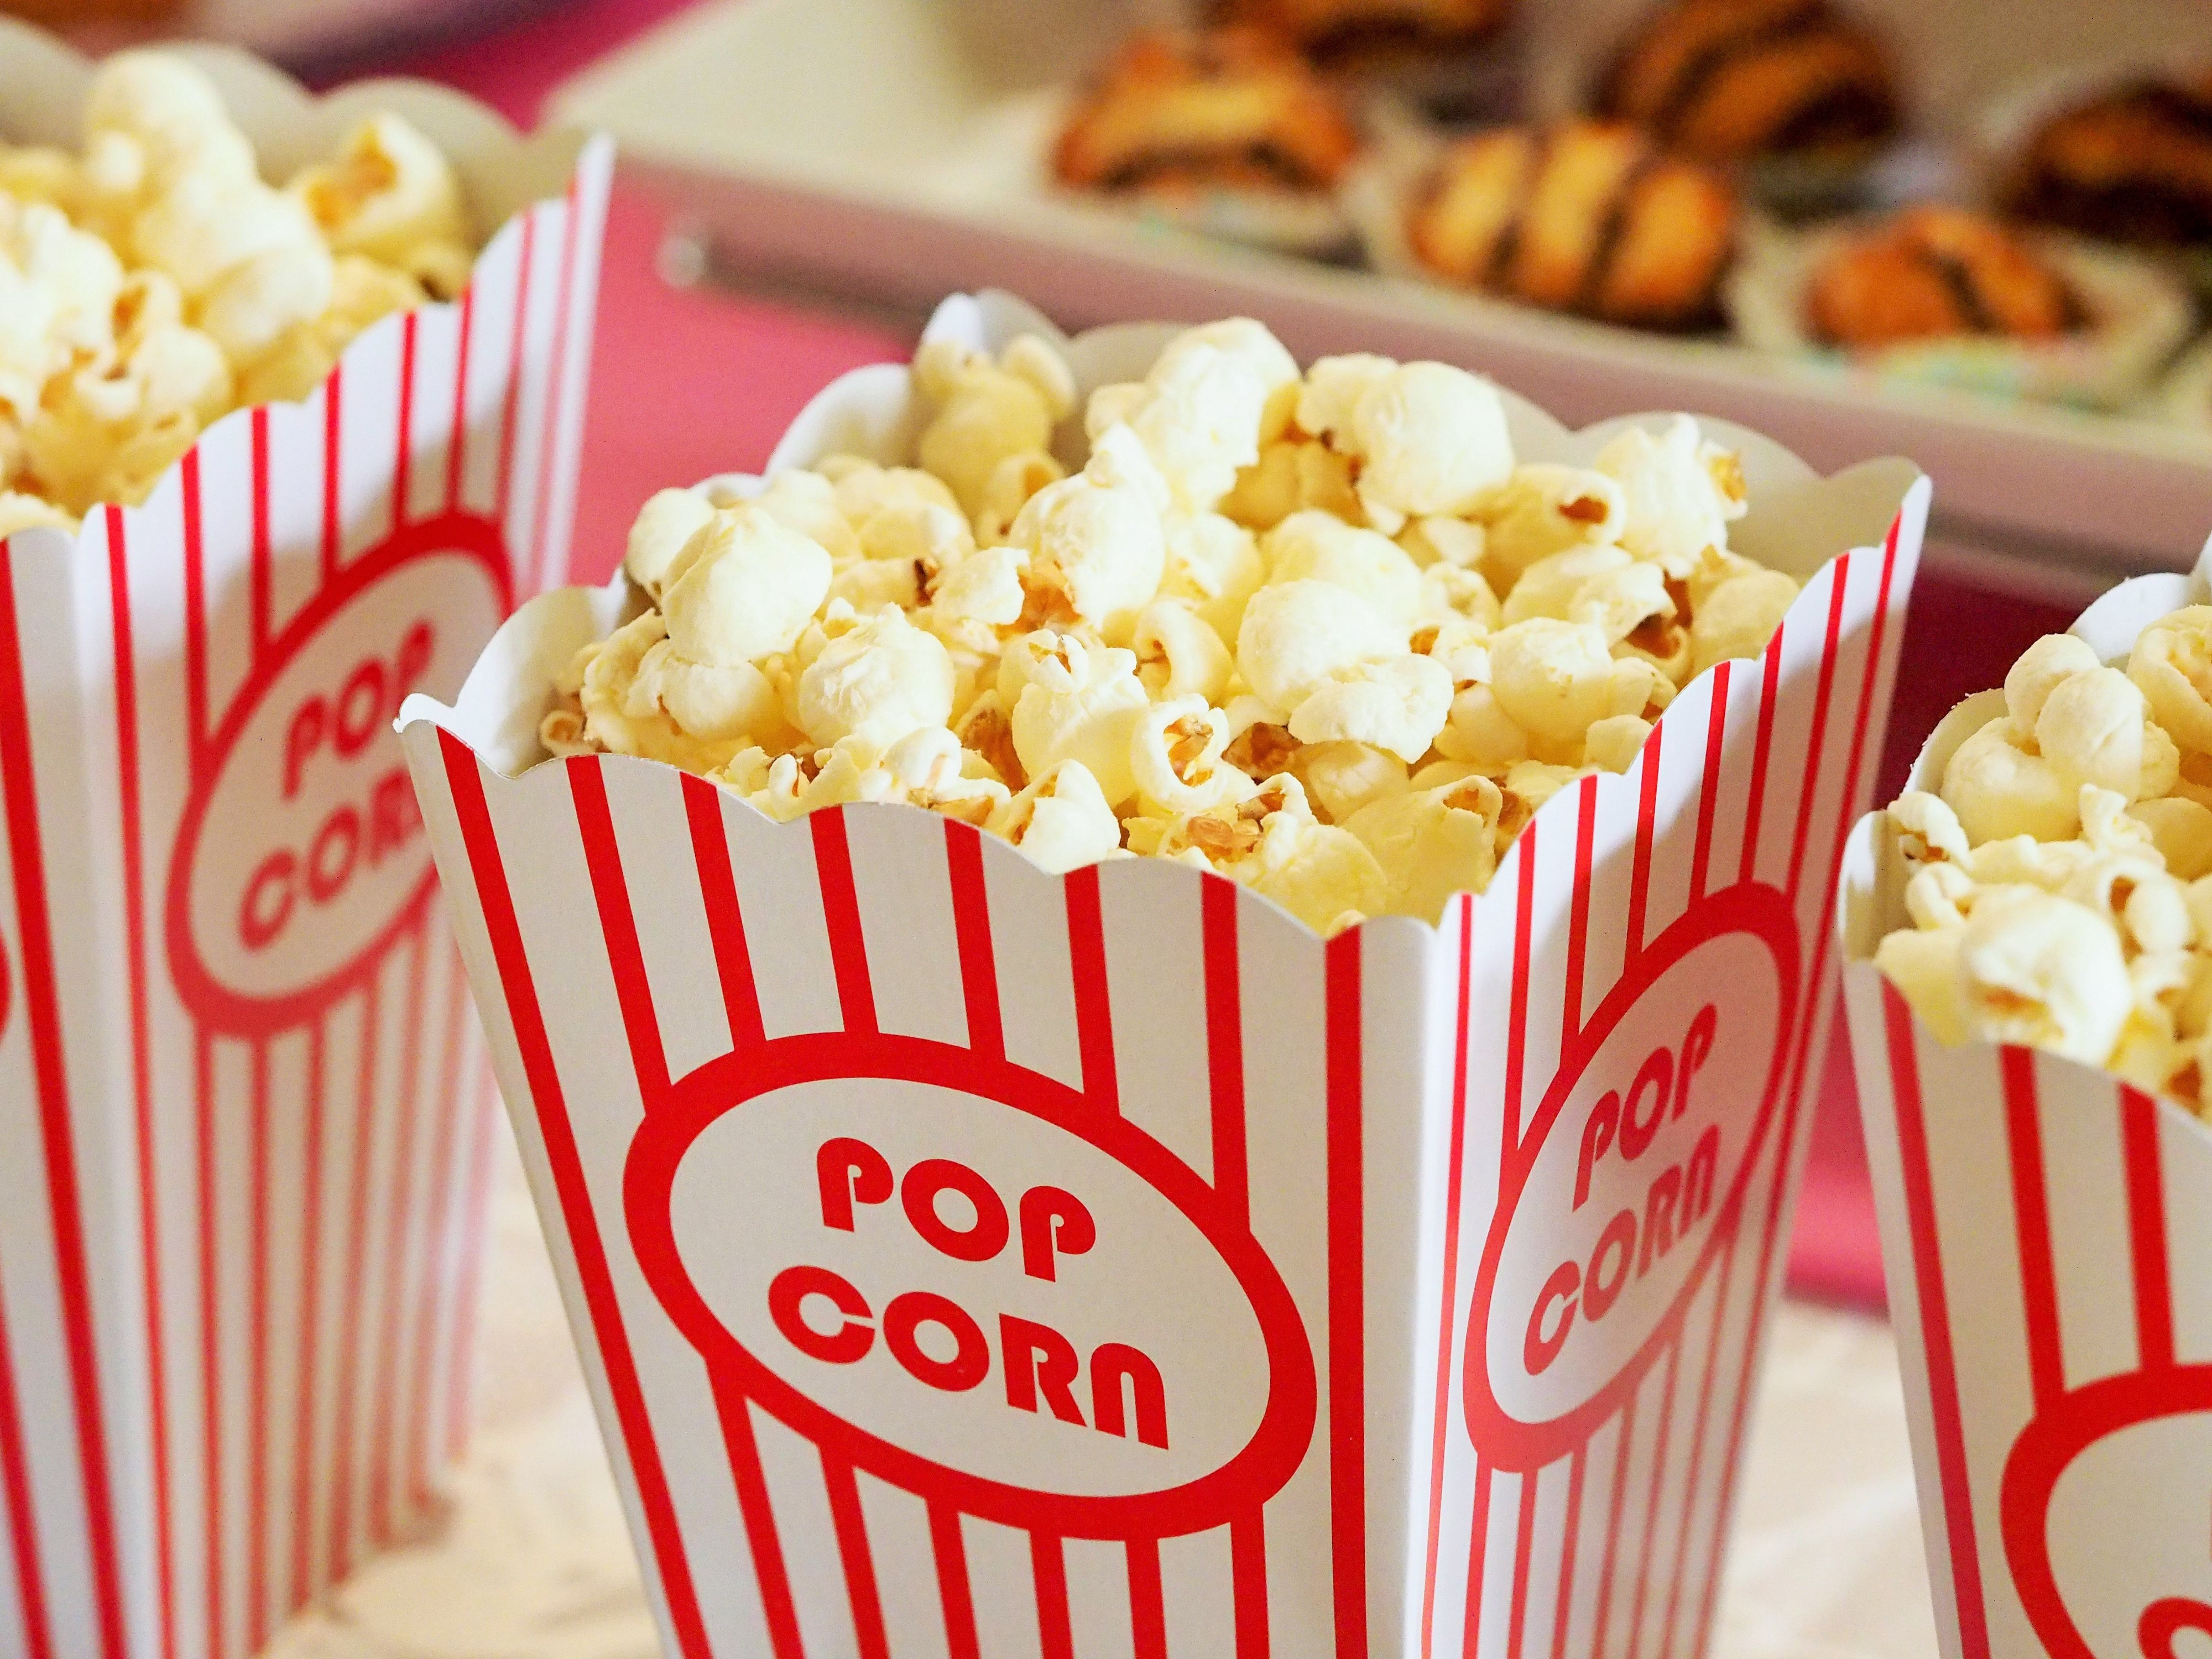 Popcorn in a classic red and white carton.